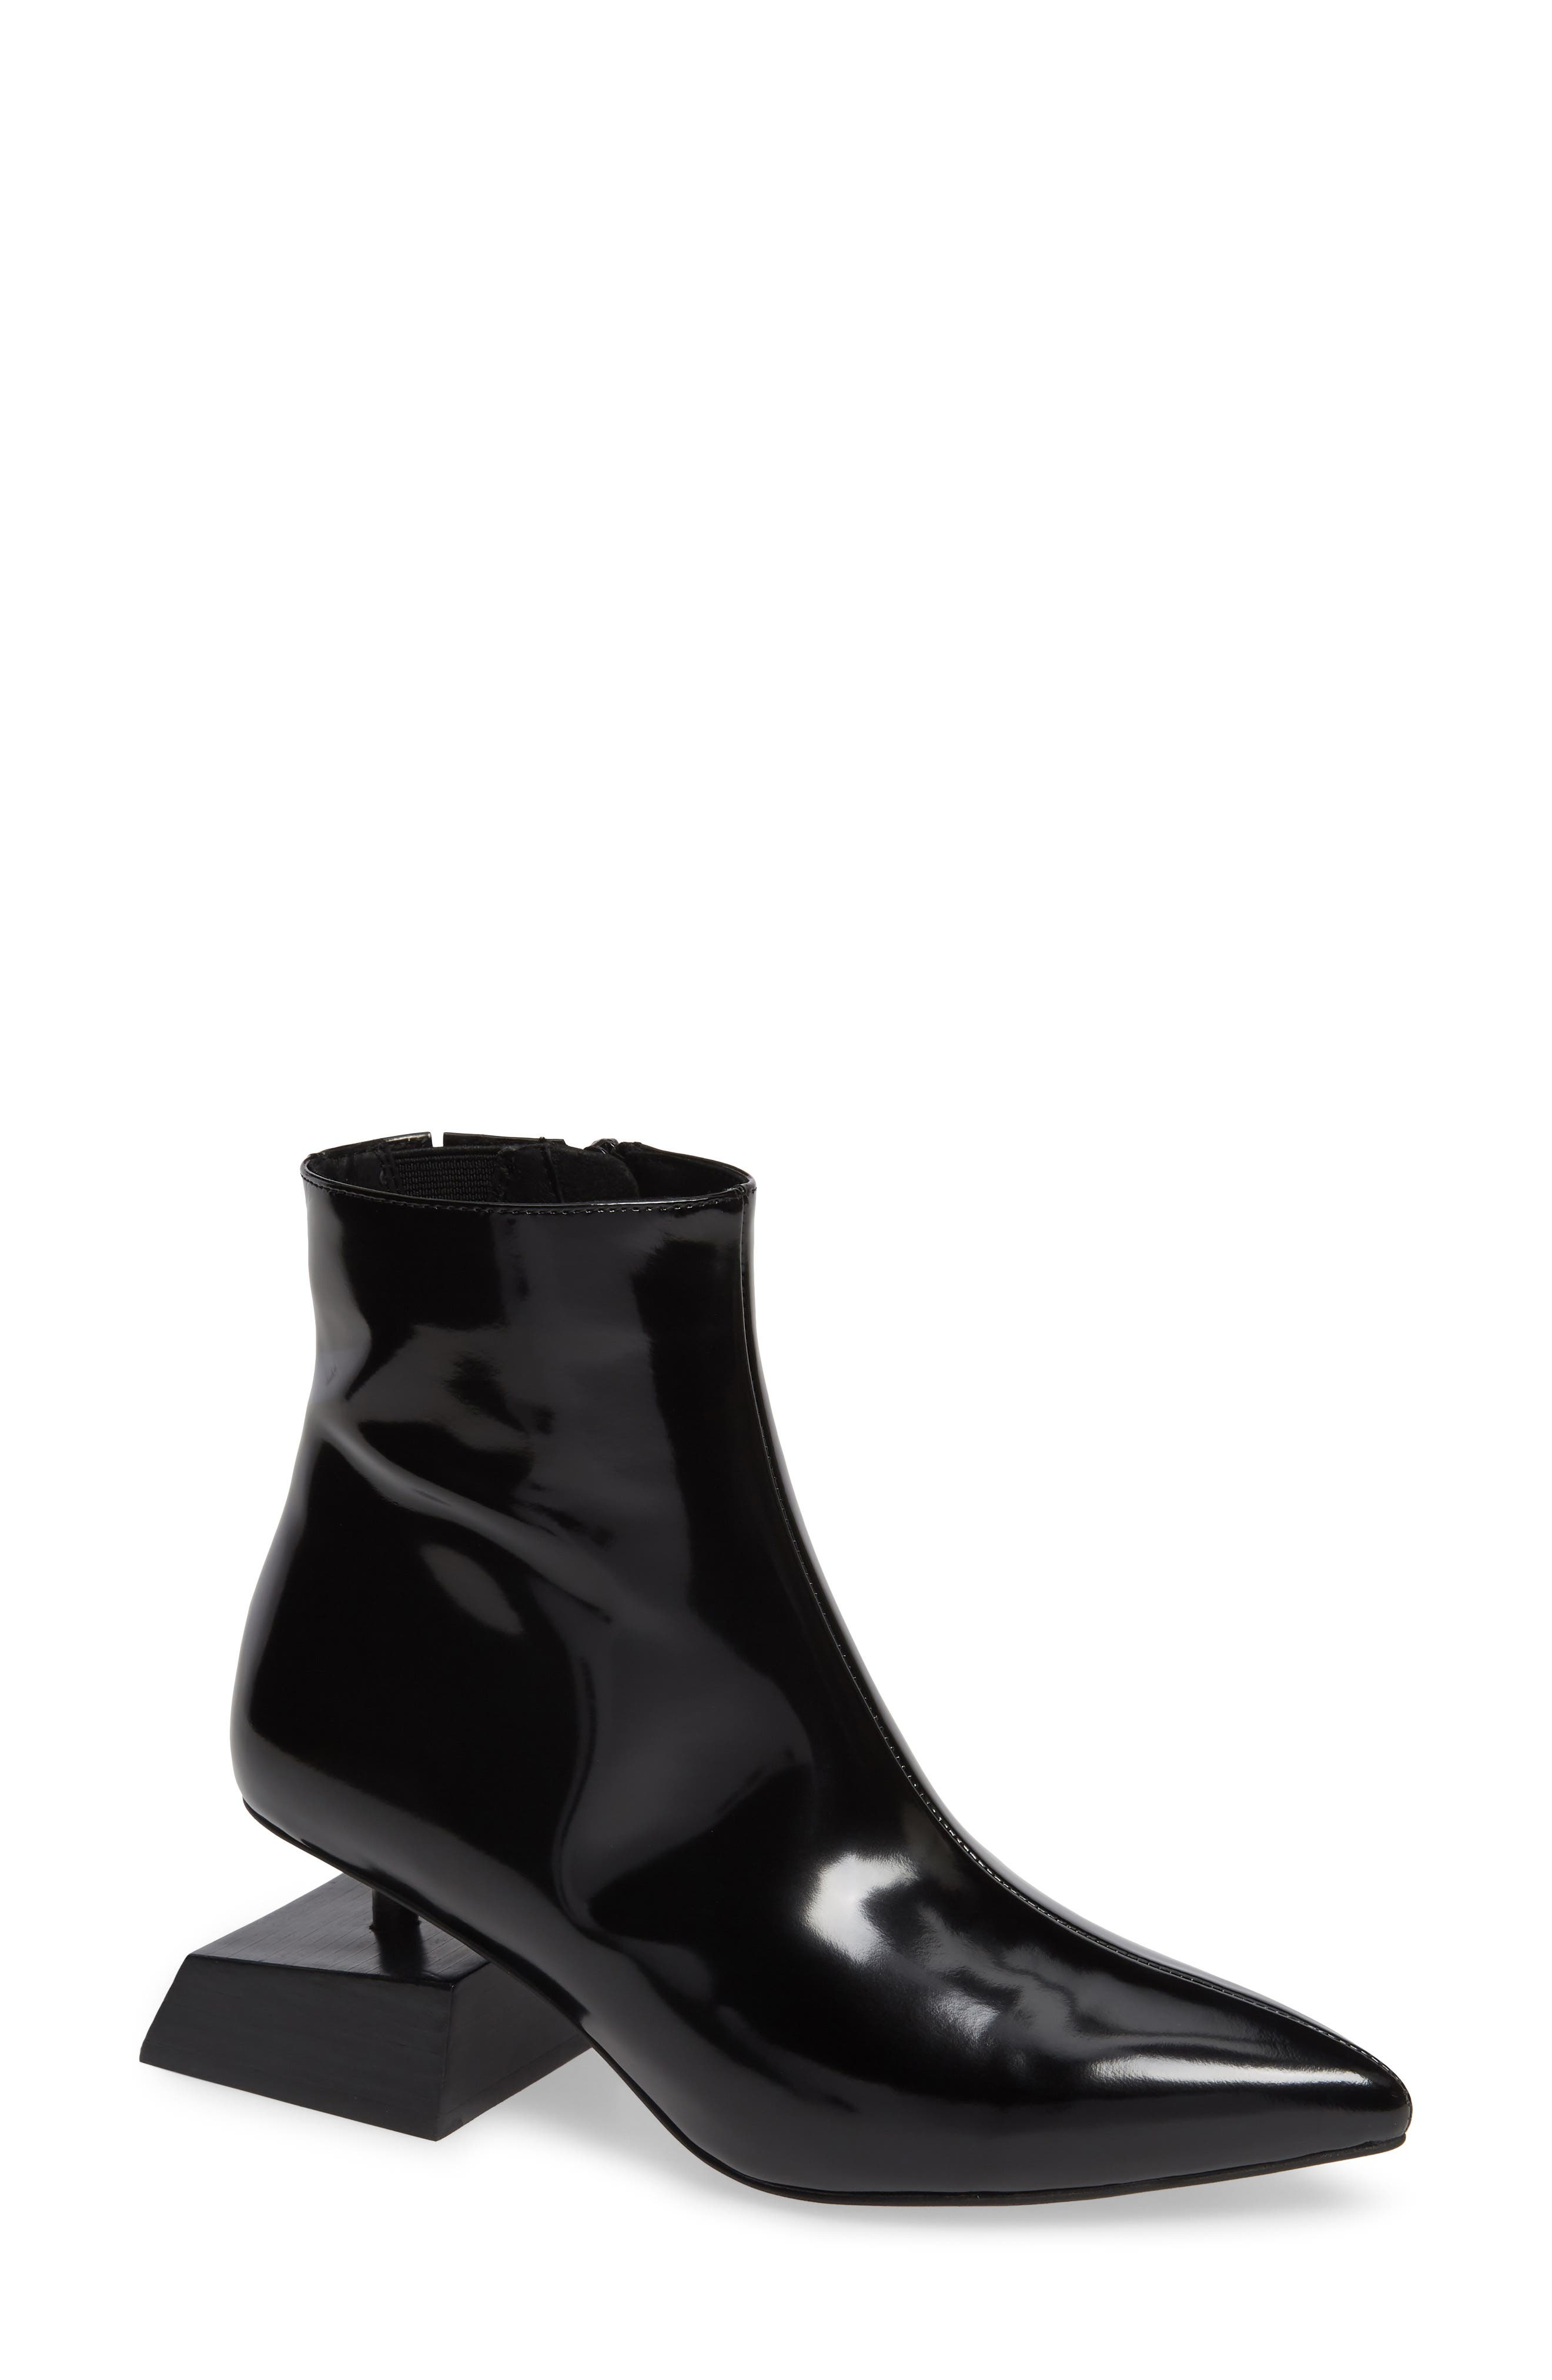 5ab52b96ef1 Jeffrey Campbell Women s Boots